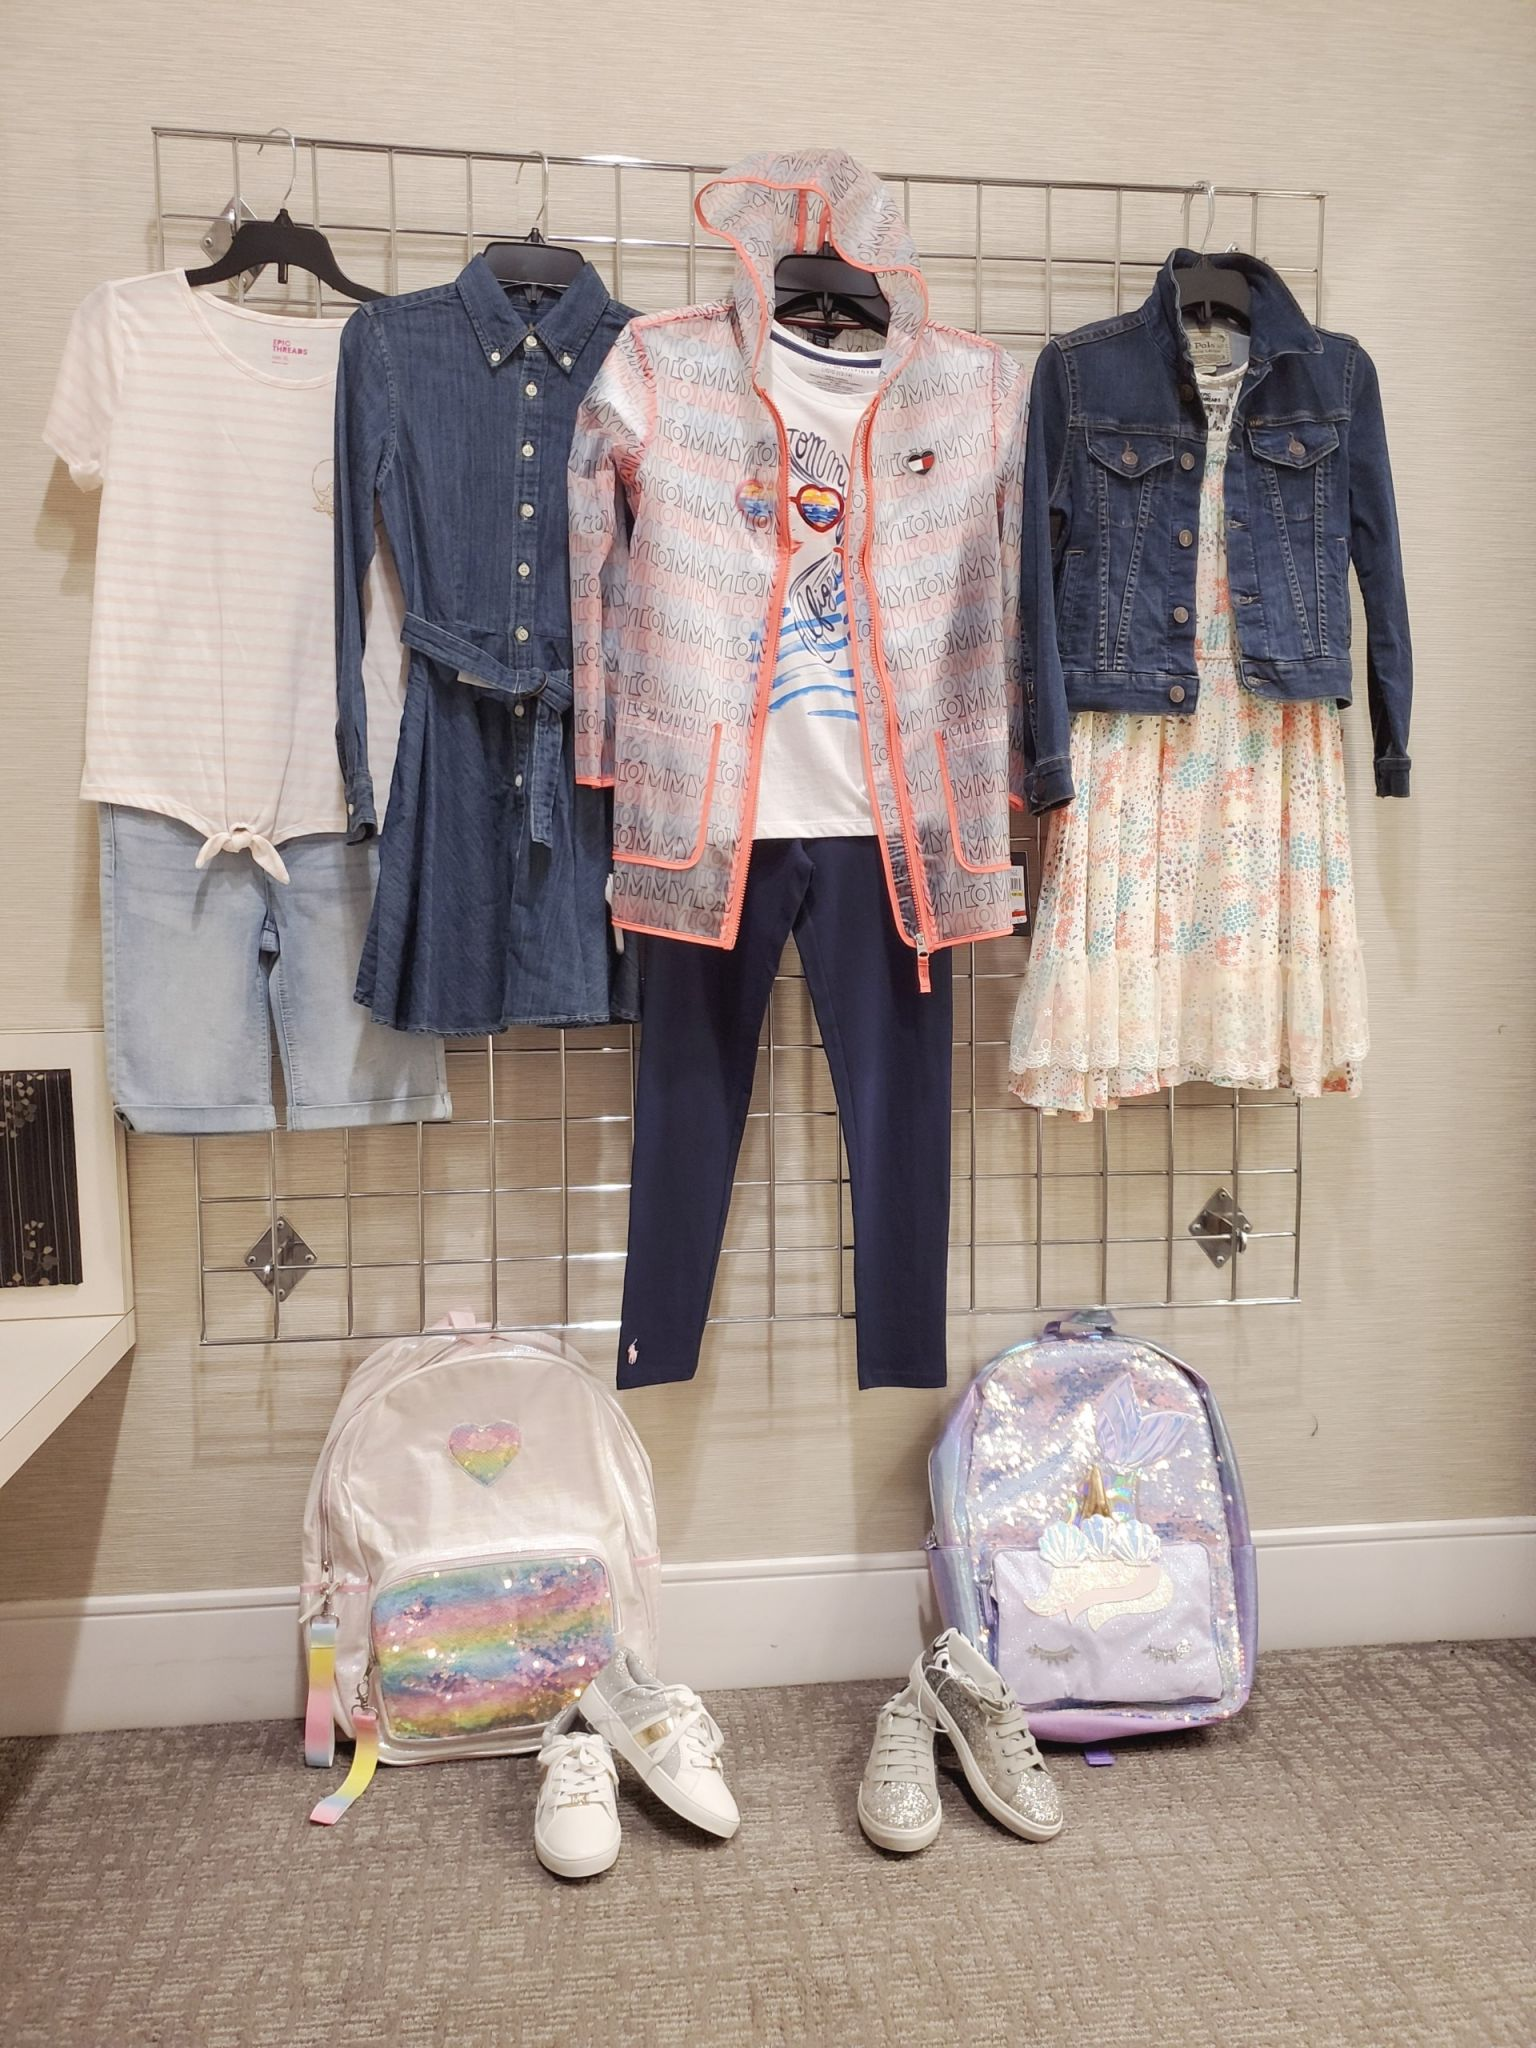 Is back-to-school shopping still a thing? Here are safer alternatives to  shopping - Houston Chronicle